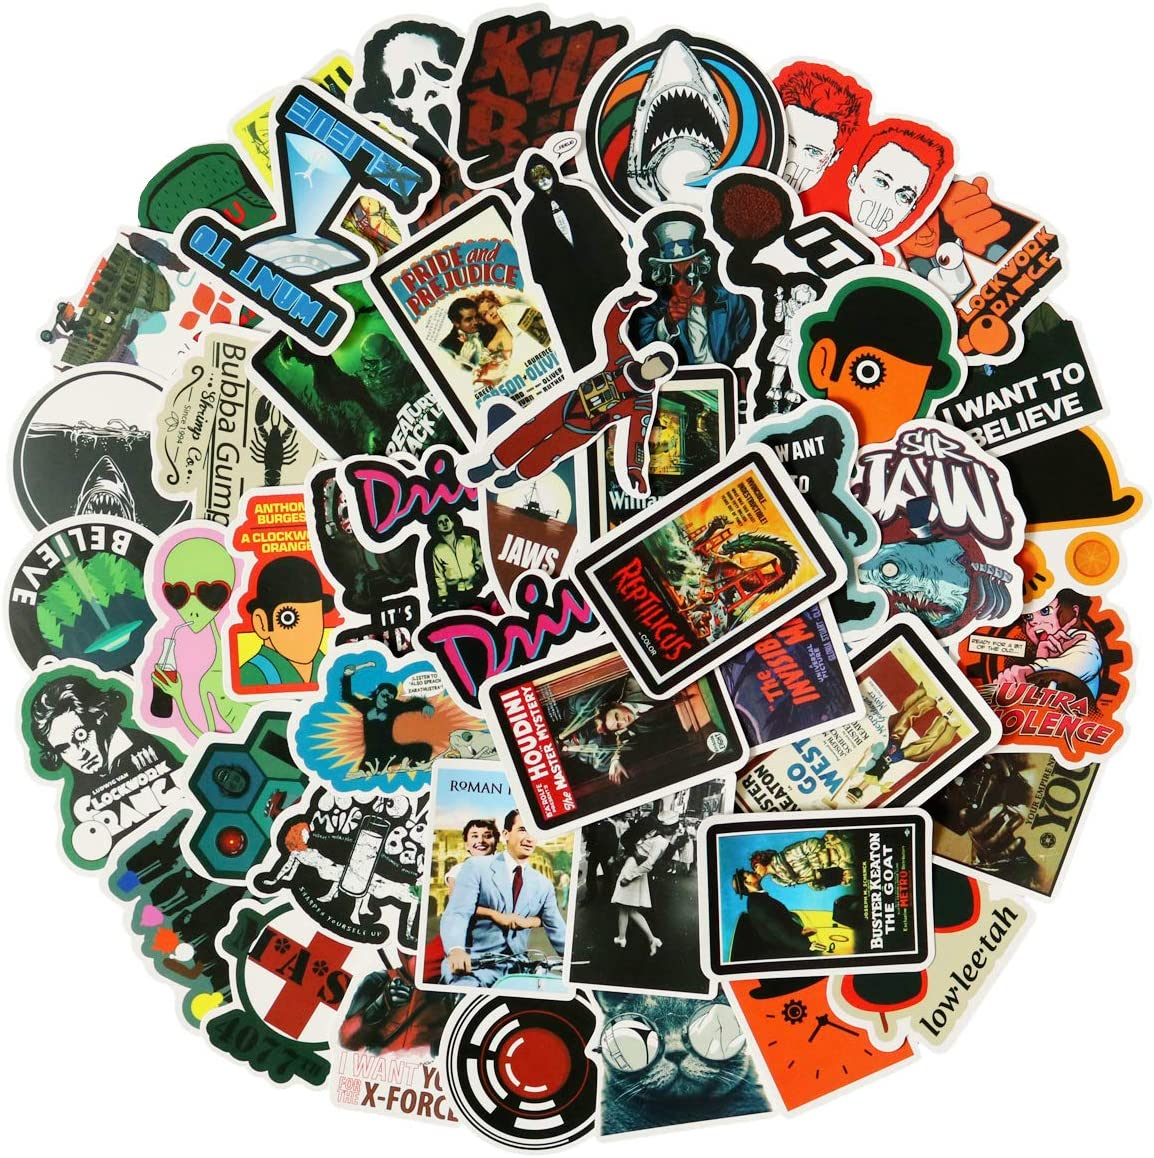 Classic American Movies Sticker Pack of 50 Stickers - Film Stickers for Laptop, Funny Stickers for Laptops, Computers, Hydro Flasks, Water Bottles (Classic Movies)